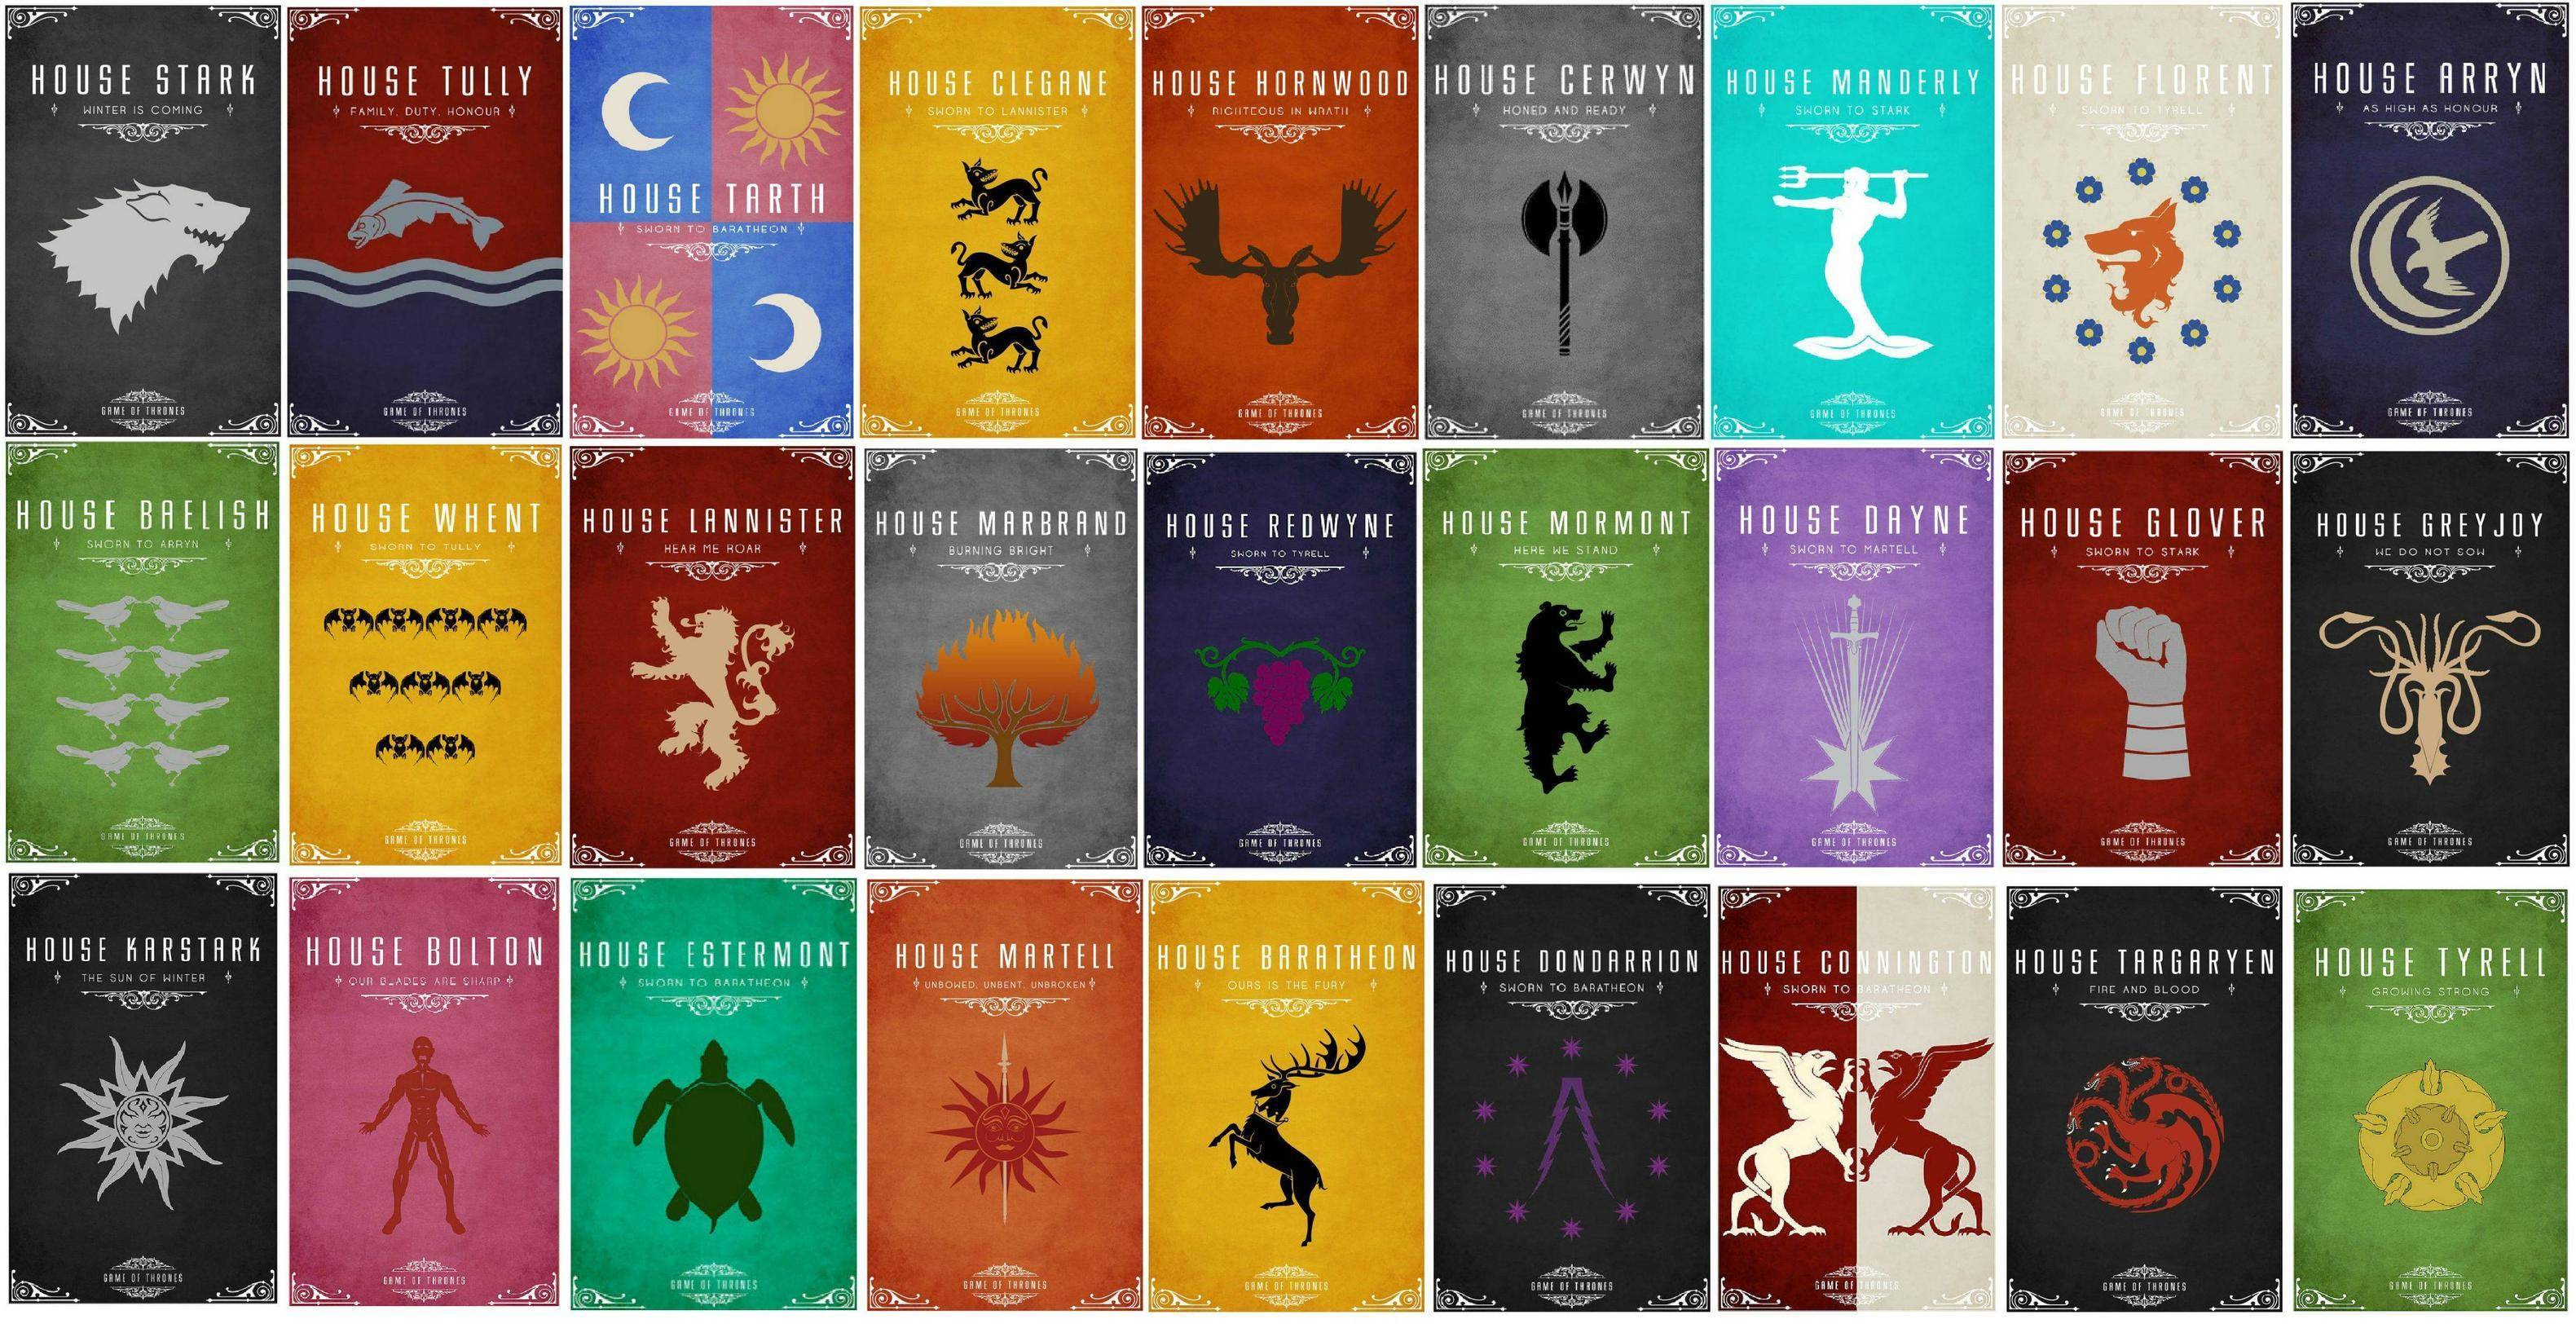 Game of Thrones Houses HD Wallpapers